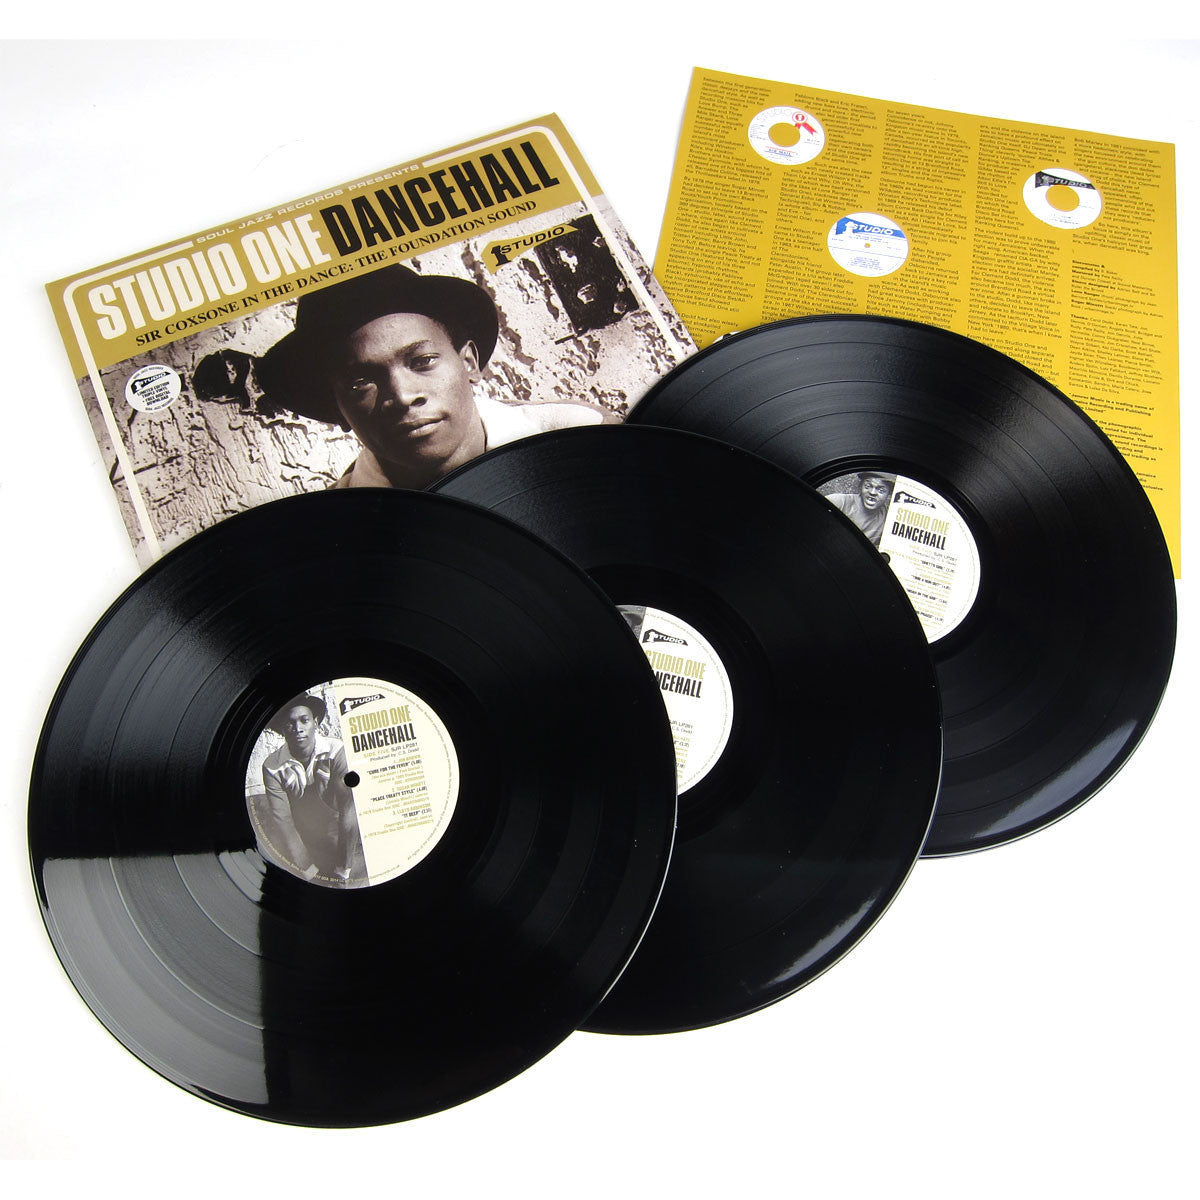 Soul Jazz: Studio One Dancehall - Sir Coxsone In The Dance The Foundation Sound (Limited Edition, Free MP3) Vinyl 3LP detail